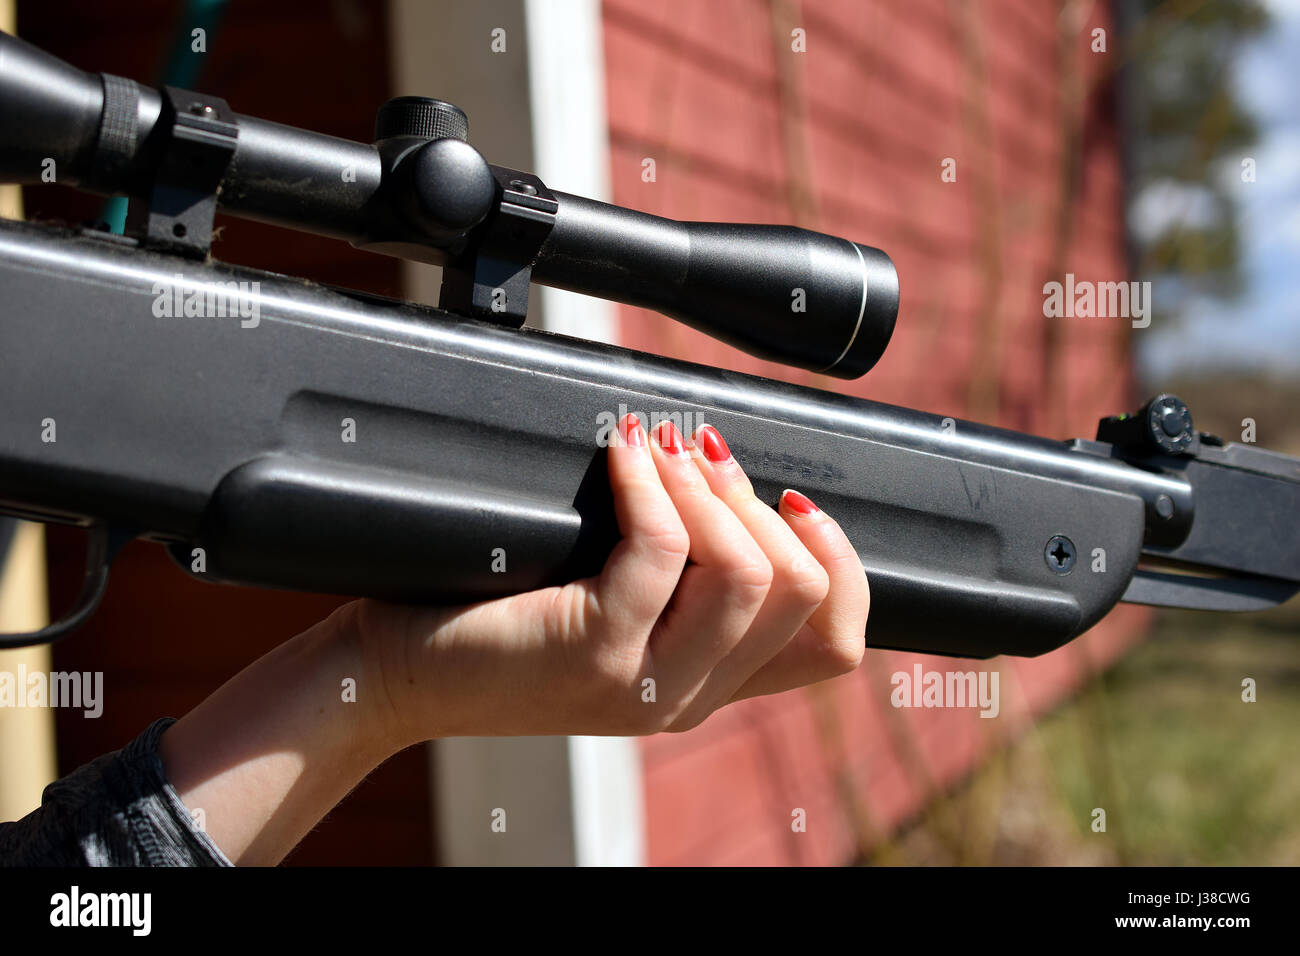 Woman holding and aiming with the air rifle. - Stock Image